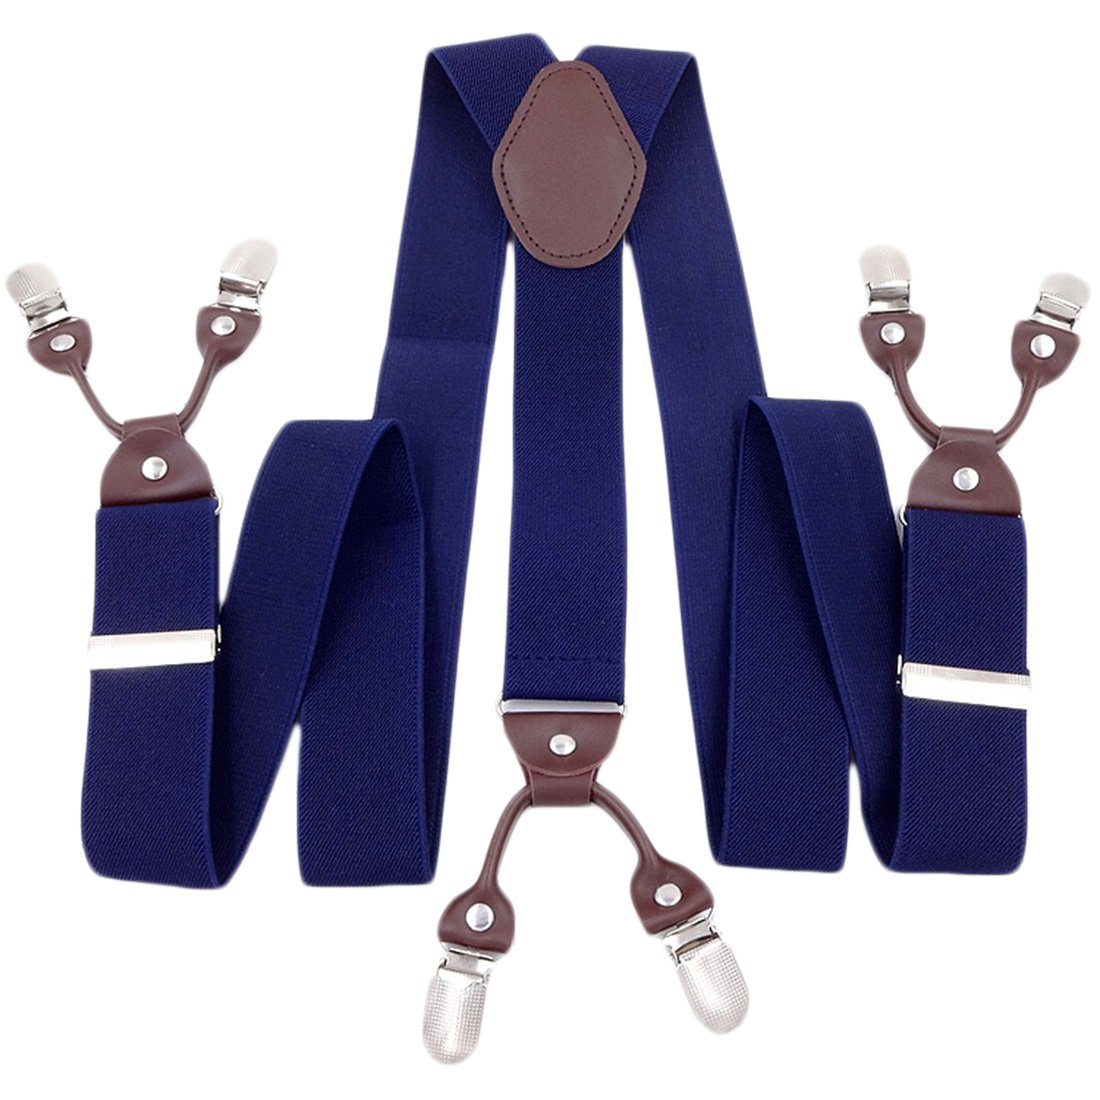 Suspender for Men Wedding Celebration Business Casual Formal Party Dinner Clip-On Suit Jeans Brace Navy Blue